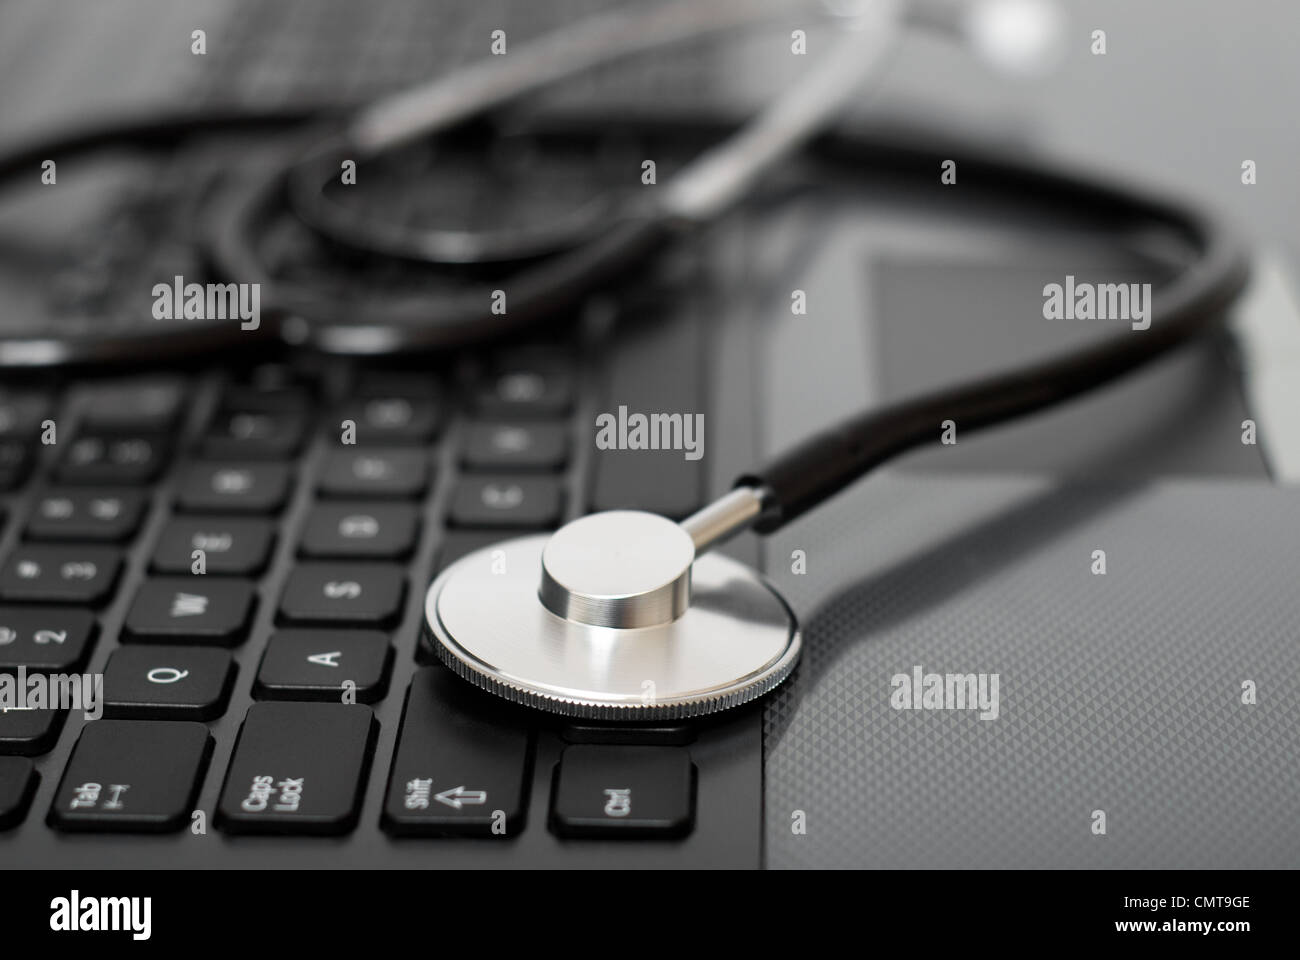 Stethoscope on a computer keyboard - Stock Image